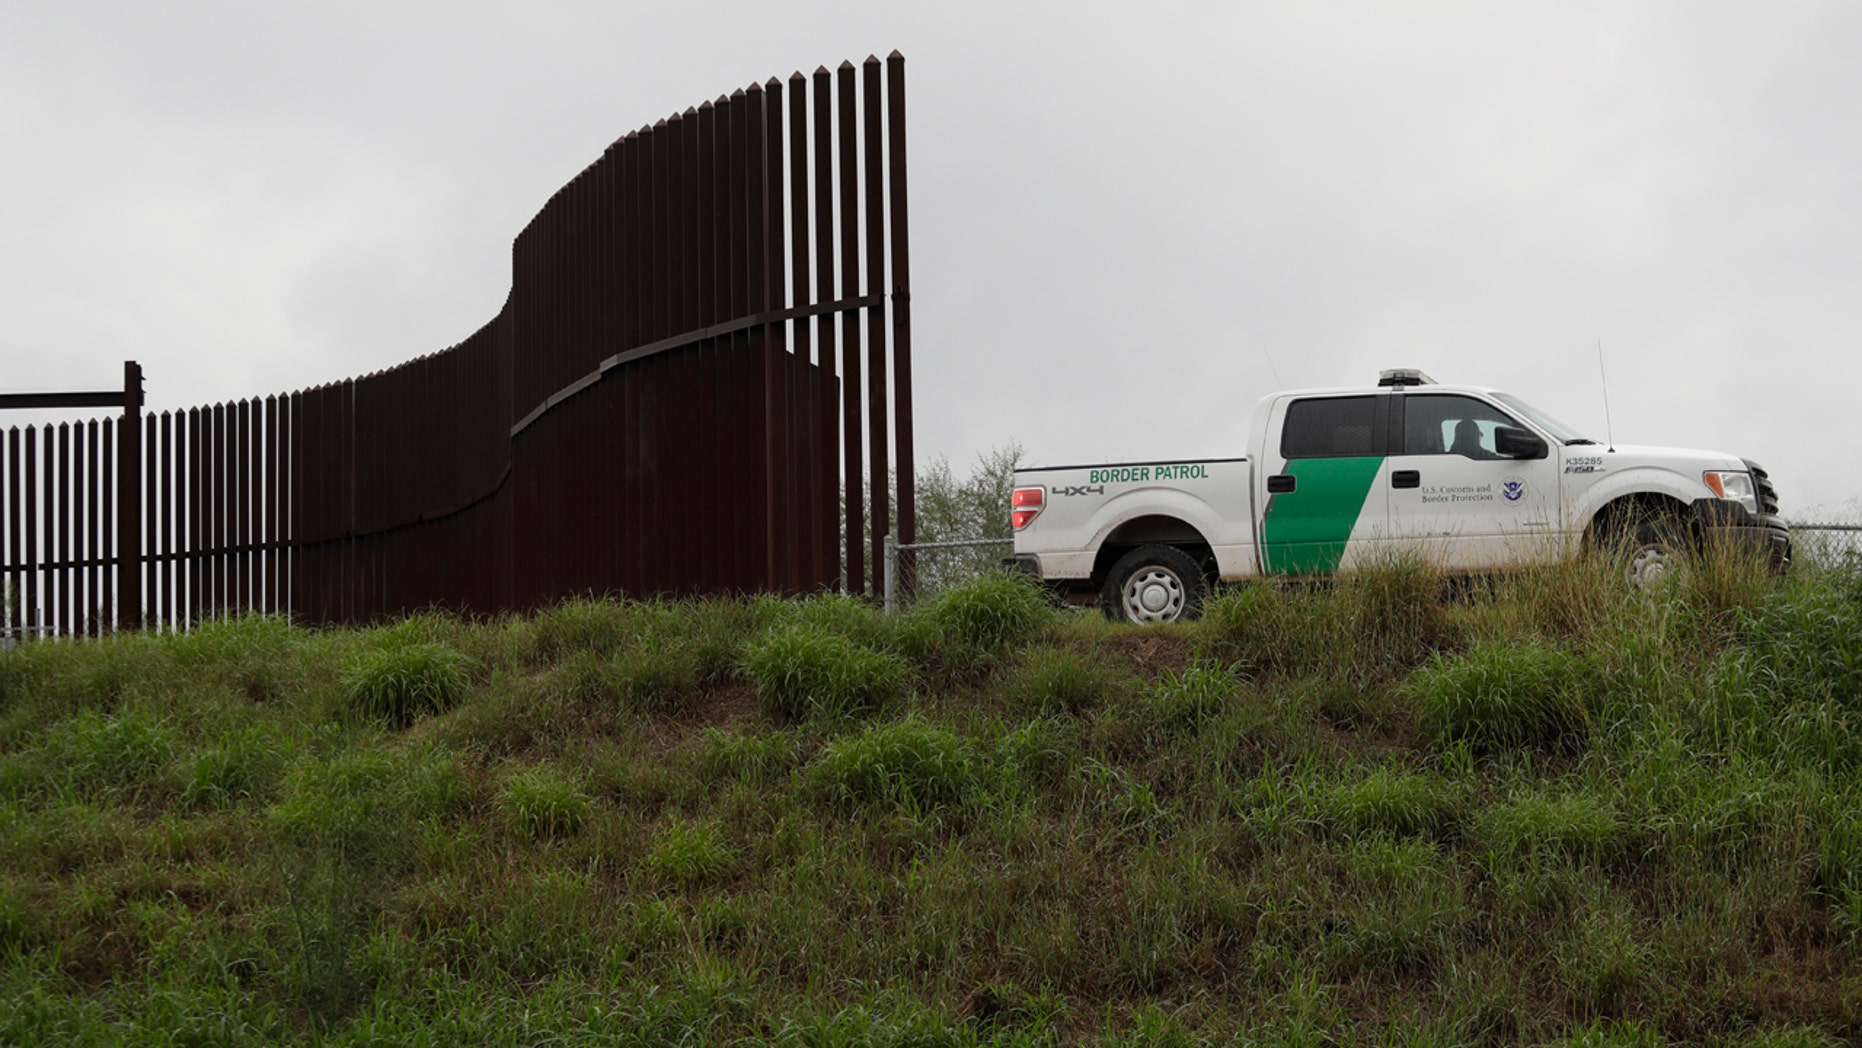 A U.S. Customs and Border Patrol agent passes along a section of border wall in Hidalgo, Texas.